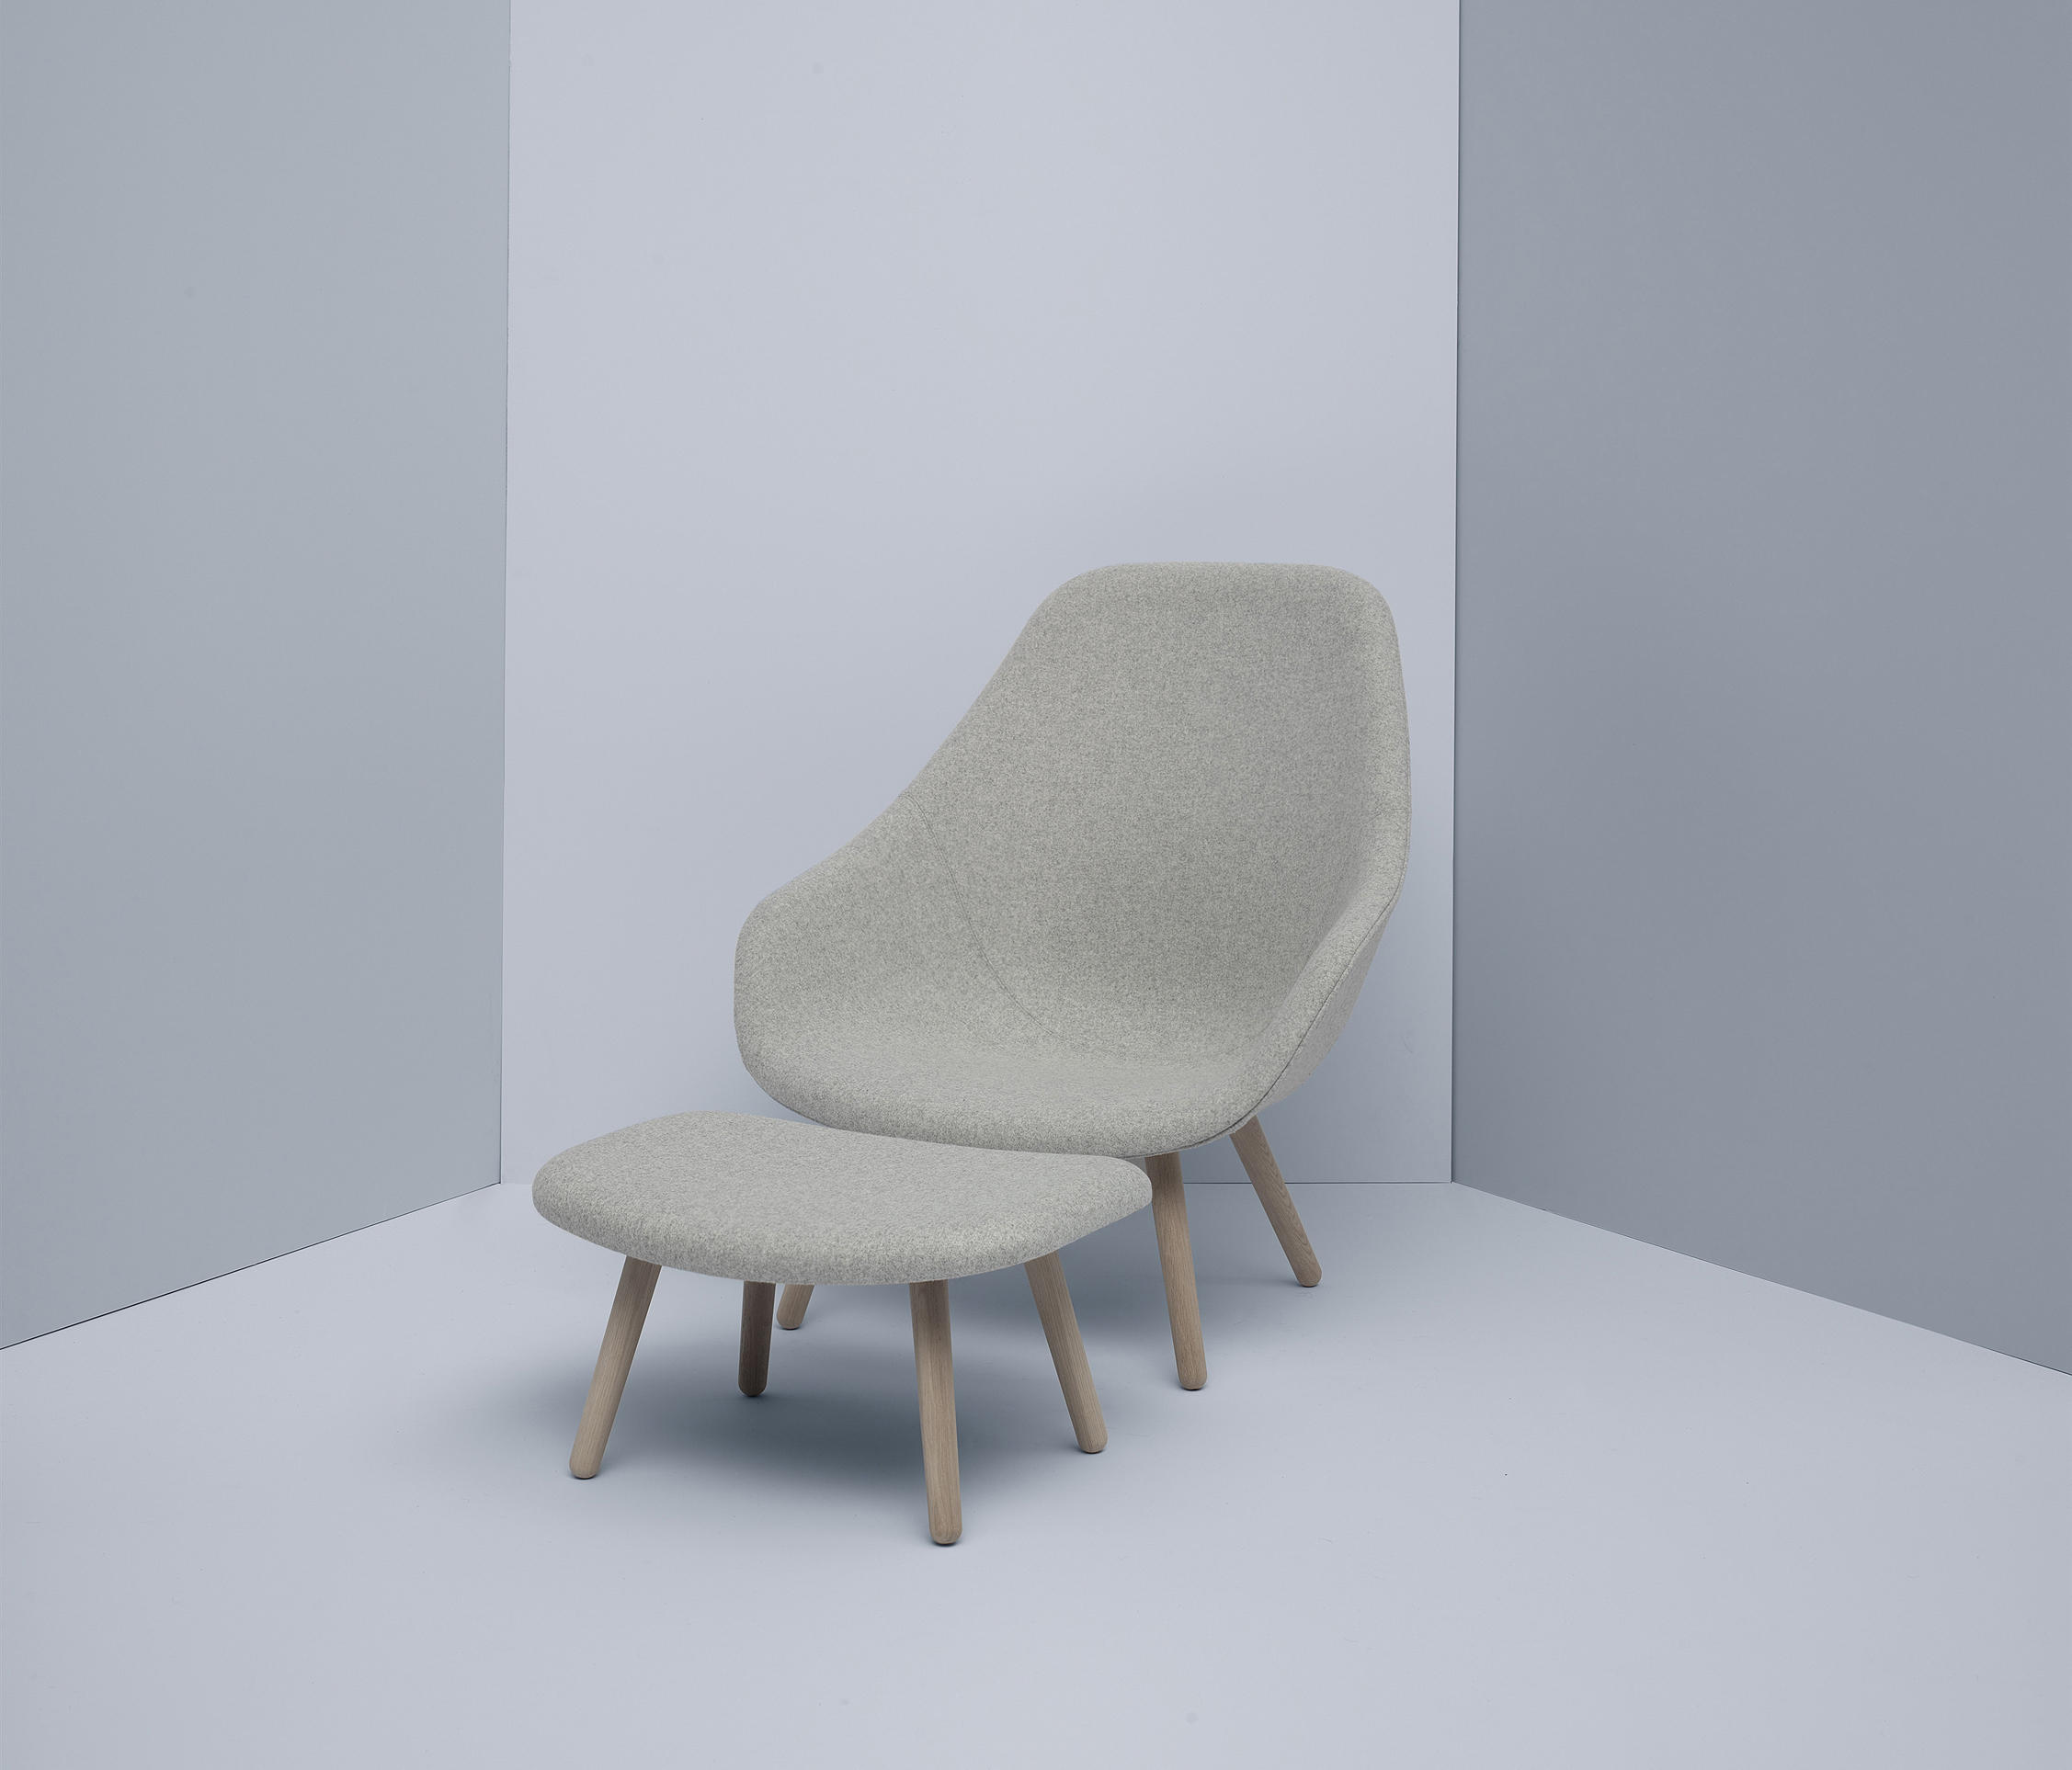 About A Lounge Chair Aal81 Armchairs From Hay Architonic